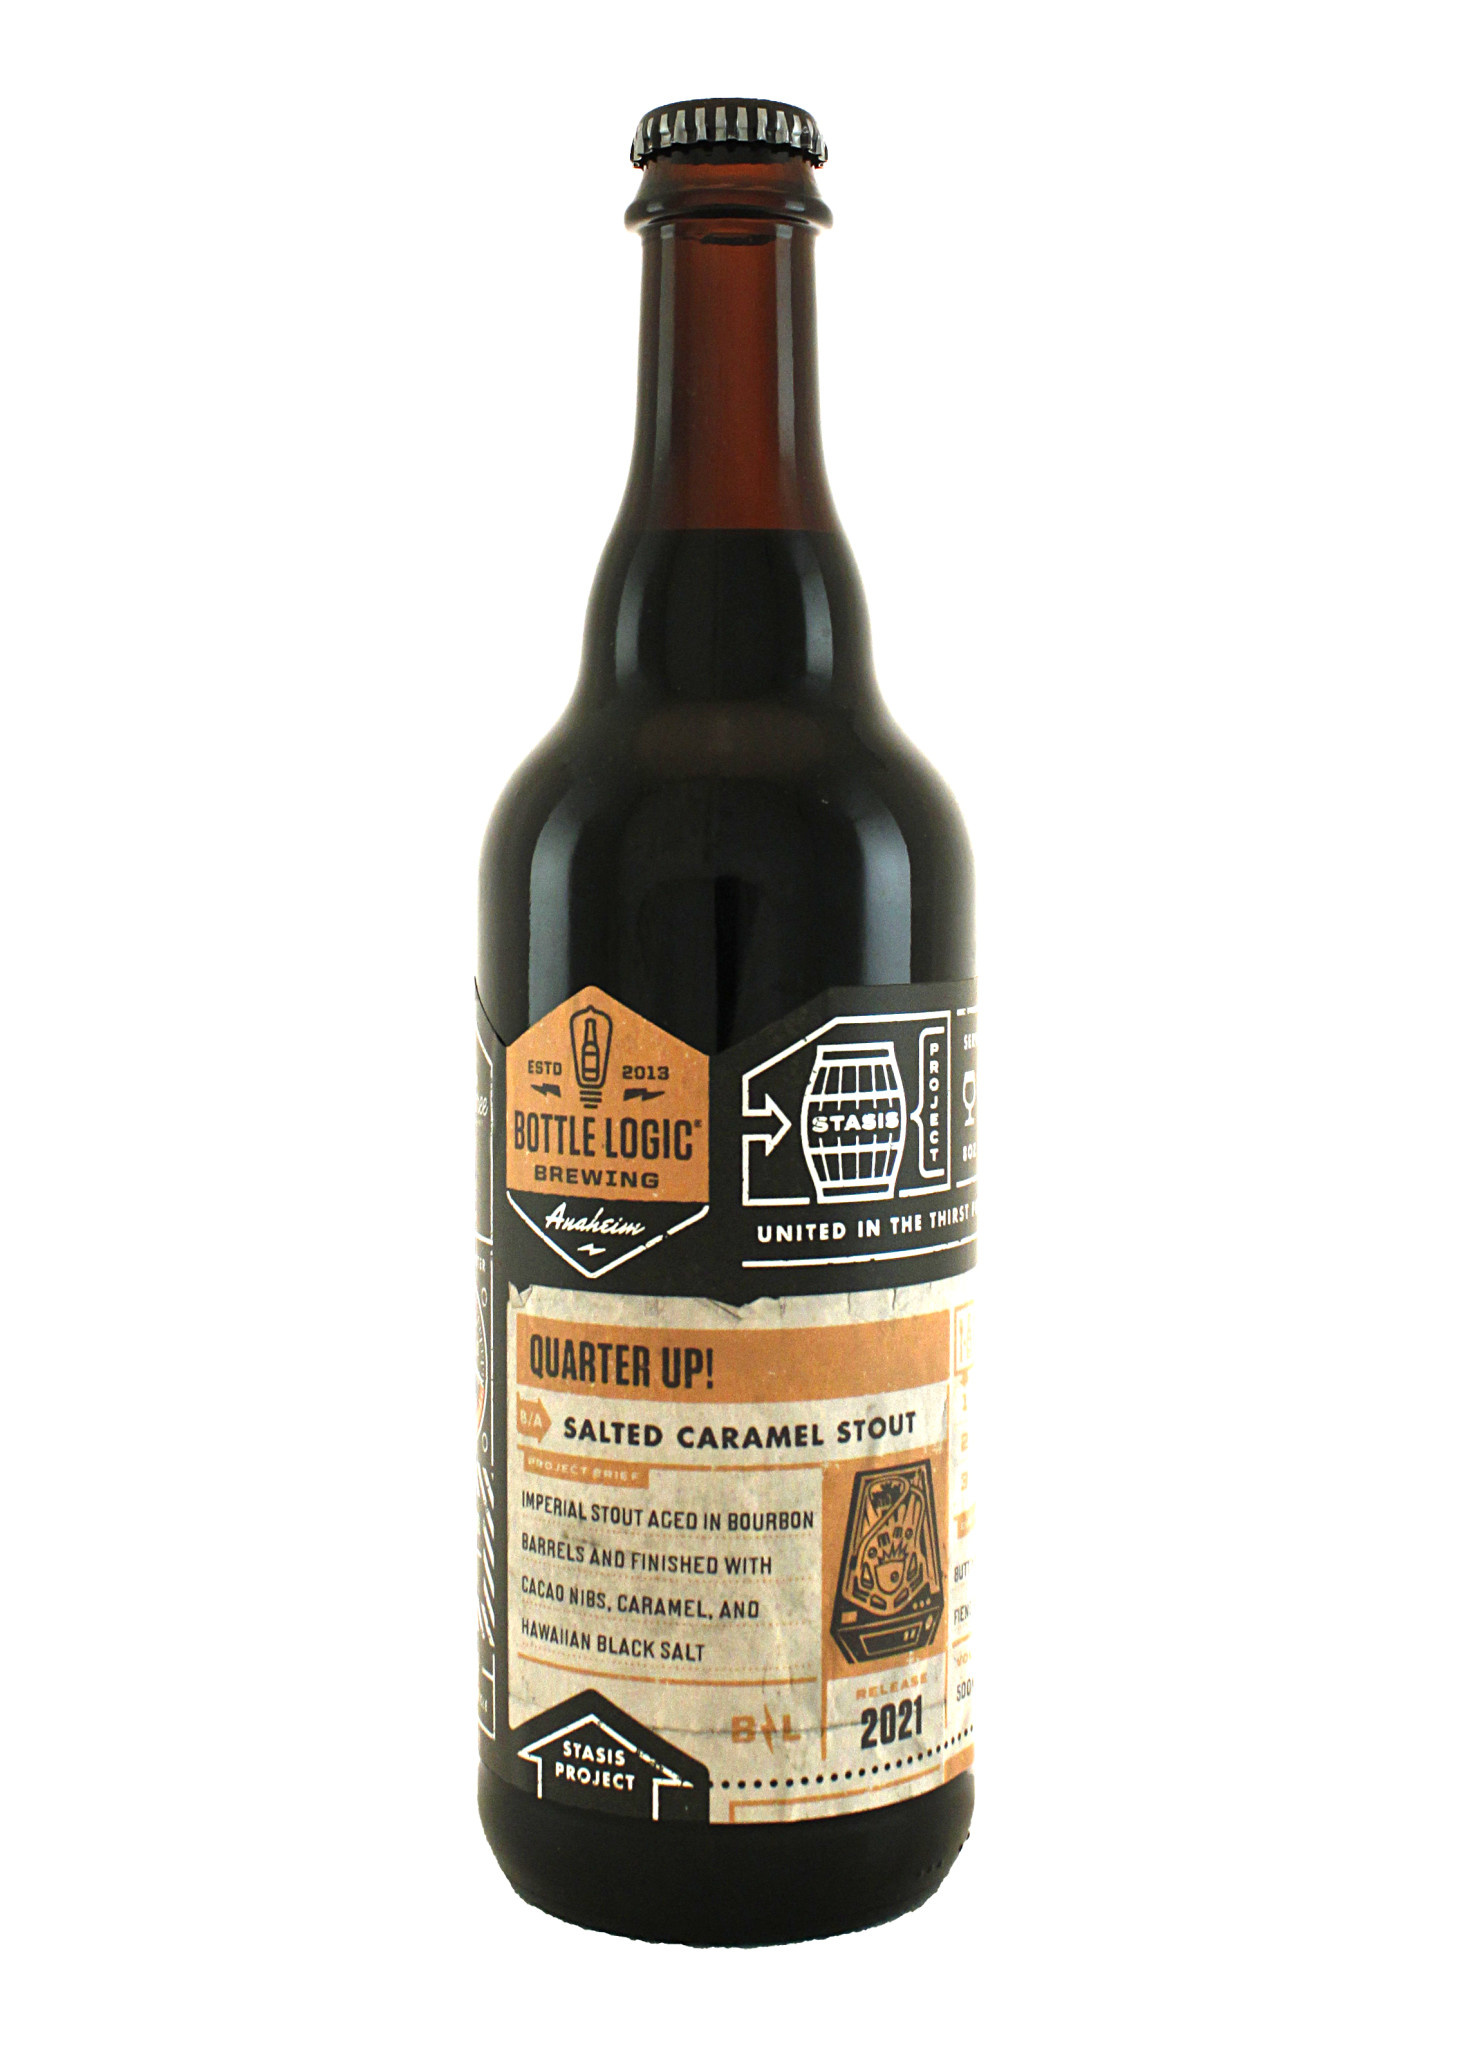 "Bottle Logic Brewing ""Quarter Up!"" Salted Caramel Stout 500ml. bottle - Anaheim, C A"